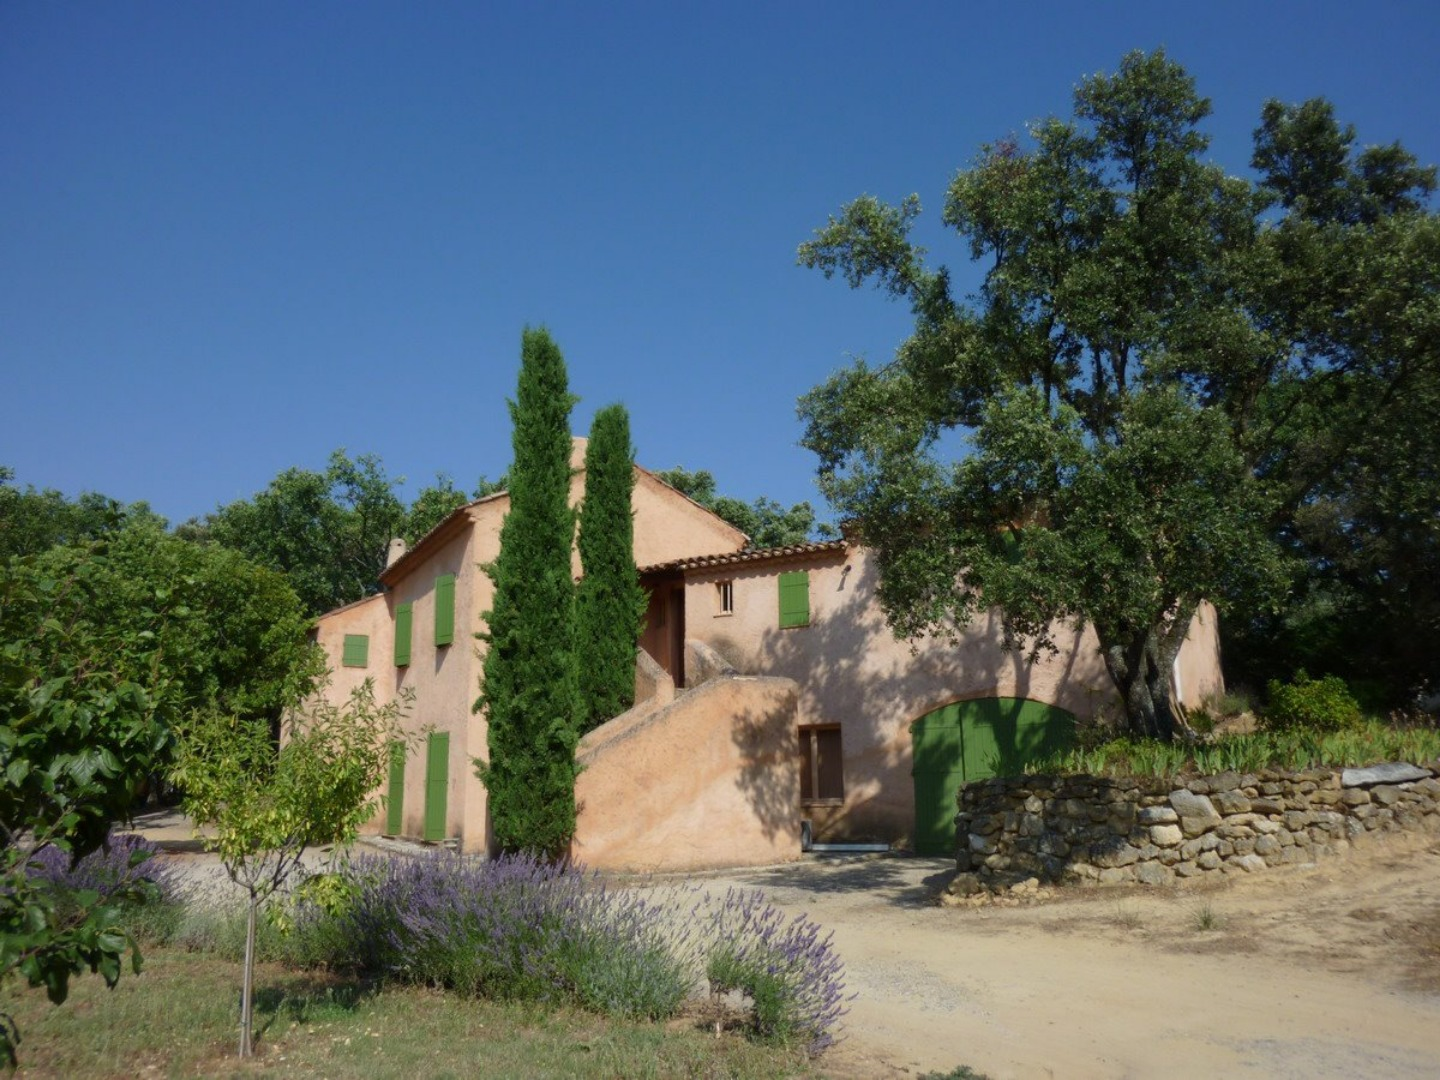 A house with bushes in the background at Les chênes verts.